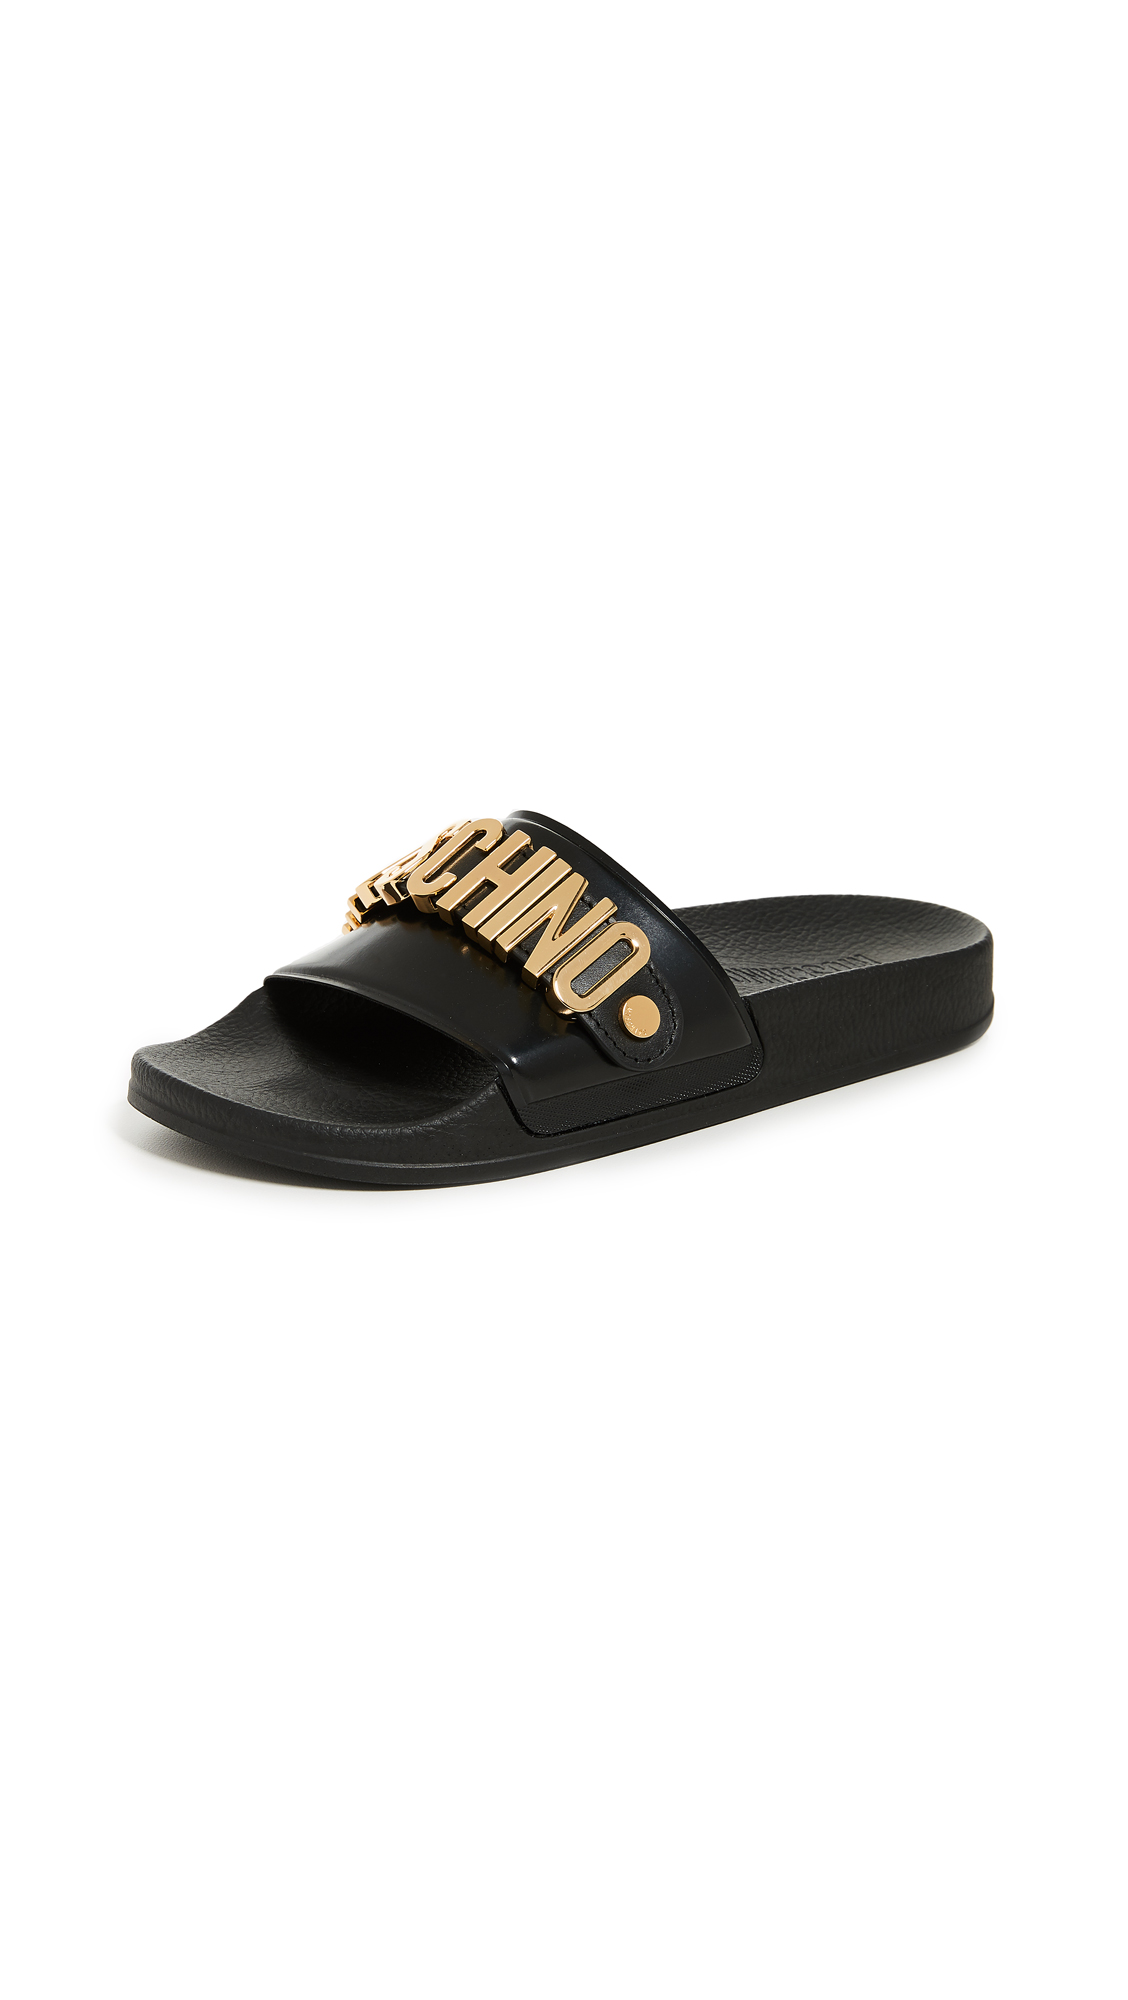 Moschino Moschino Logo Sandals - Black/Gold